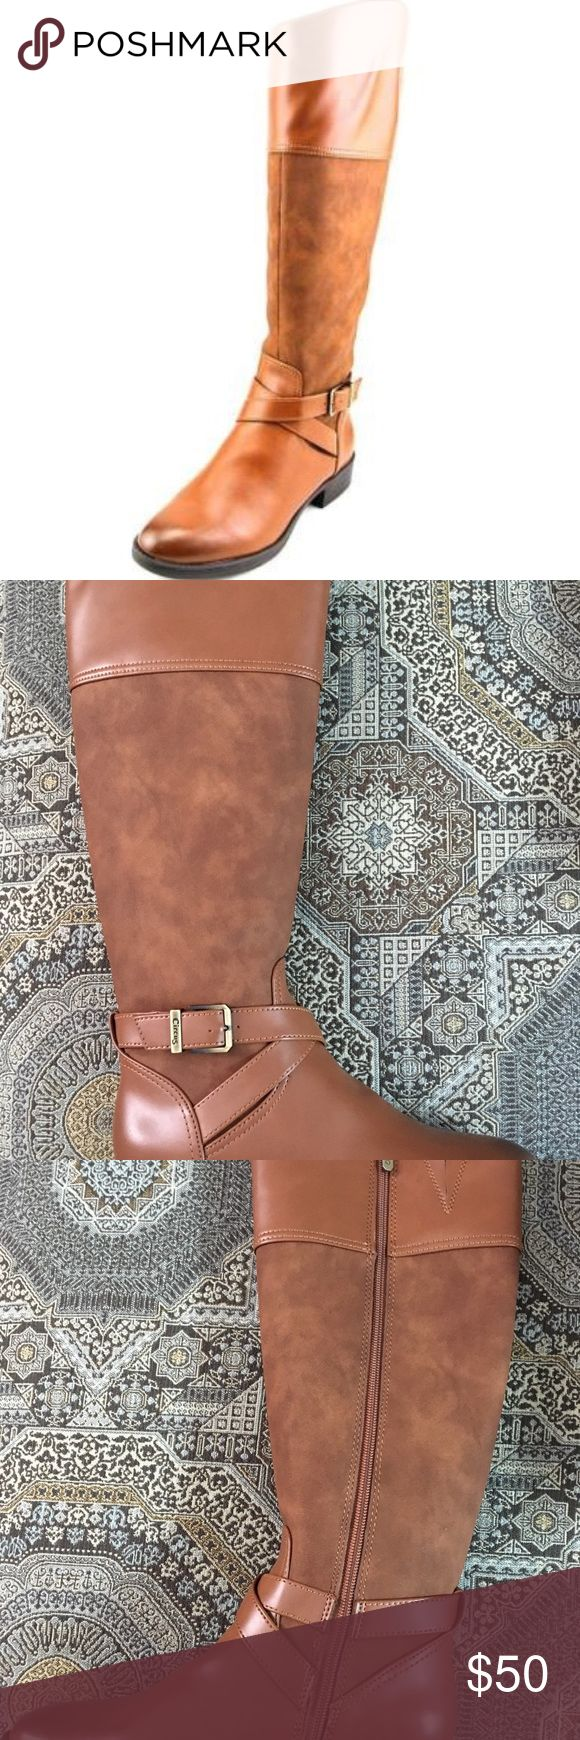 """Circus by Sam Edelman Parker Brown riding boot 7 Circus by Sam Edelman Parker Womens Fashion - Knee-High Description: Condition: New with box Brand/Style: Circus by Sam Edelman Parker Color: Whiskey , Measurements: Shaft measures 15.5"""", Circumference measures 15"""" and 1.25"""" heel Width: Medium (B, M) Sku: 4249012 Product Attributes: Age Gender : Womens Color Class : Beige Footwear Style : Riding Boots Footwear Toe Shape : Round Circus by Sam Edelman Shoes Heeled Boots"""